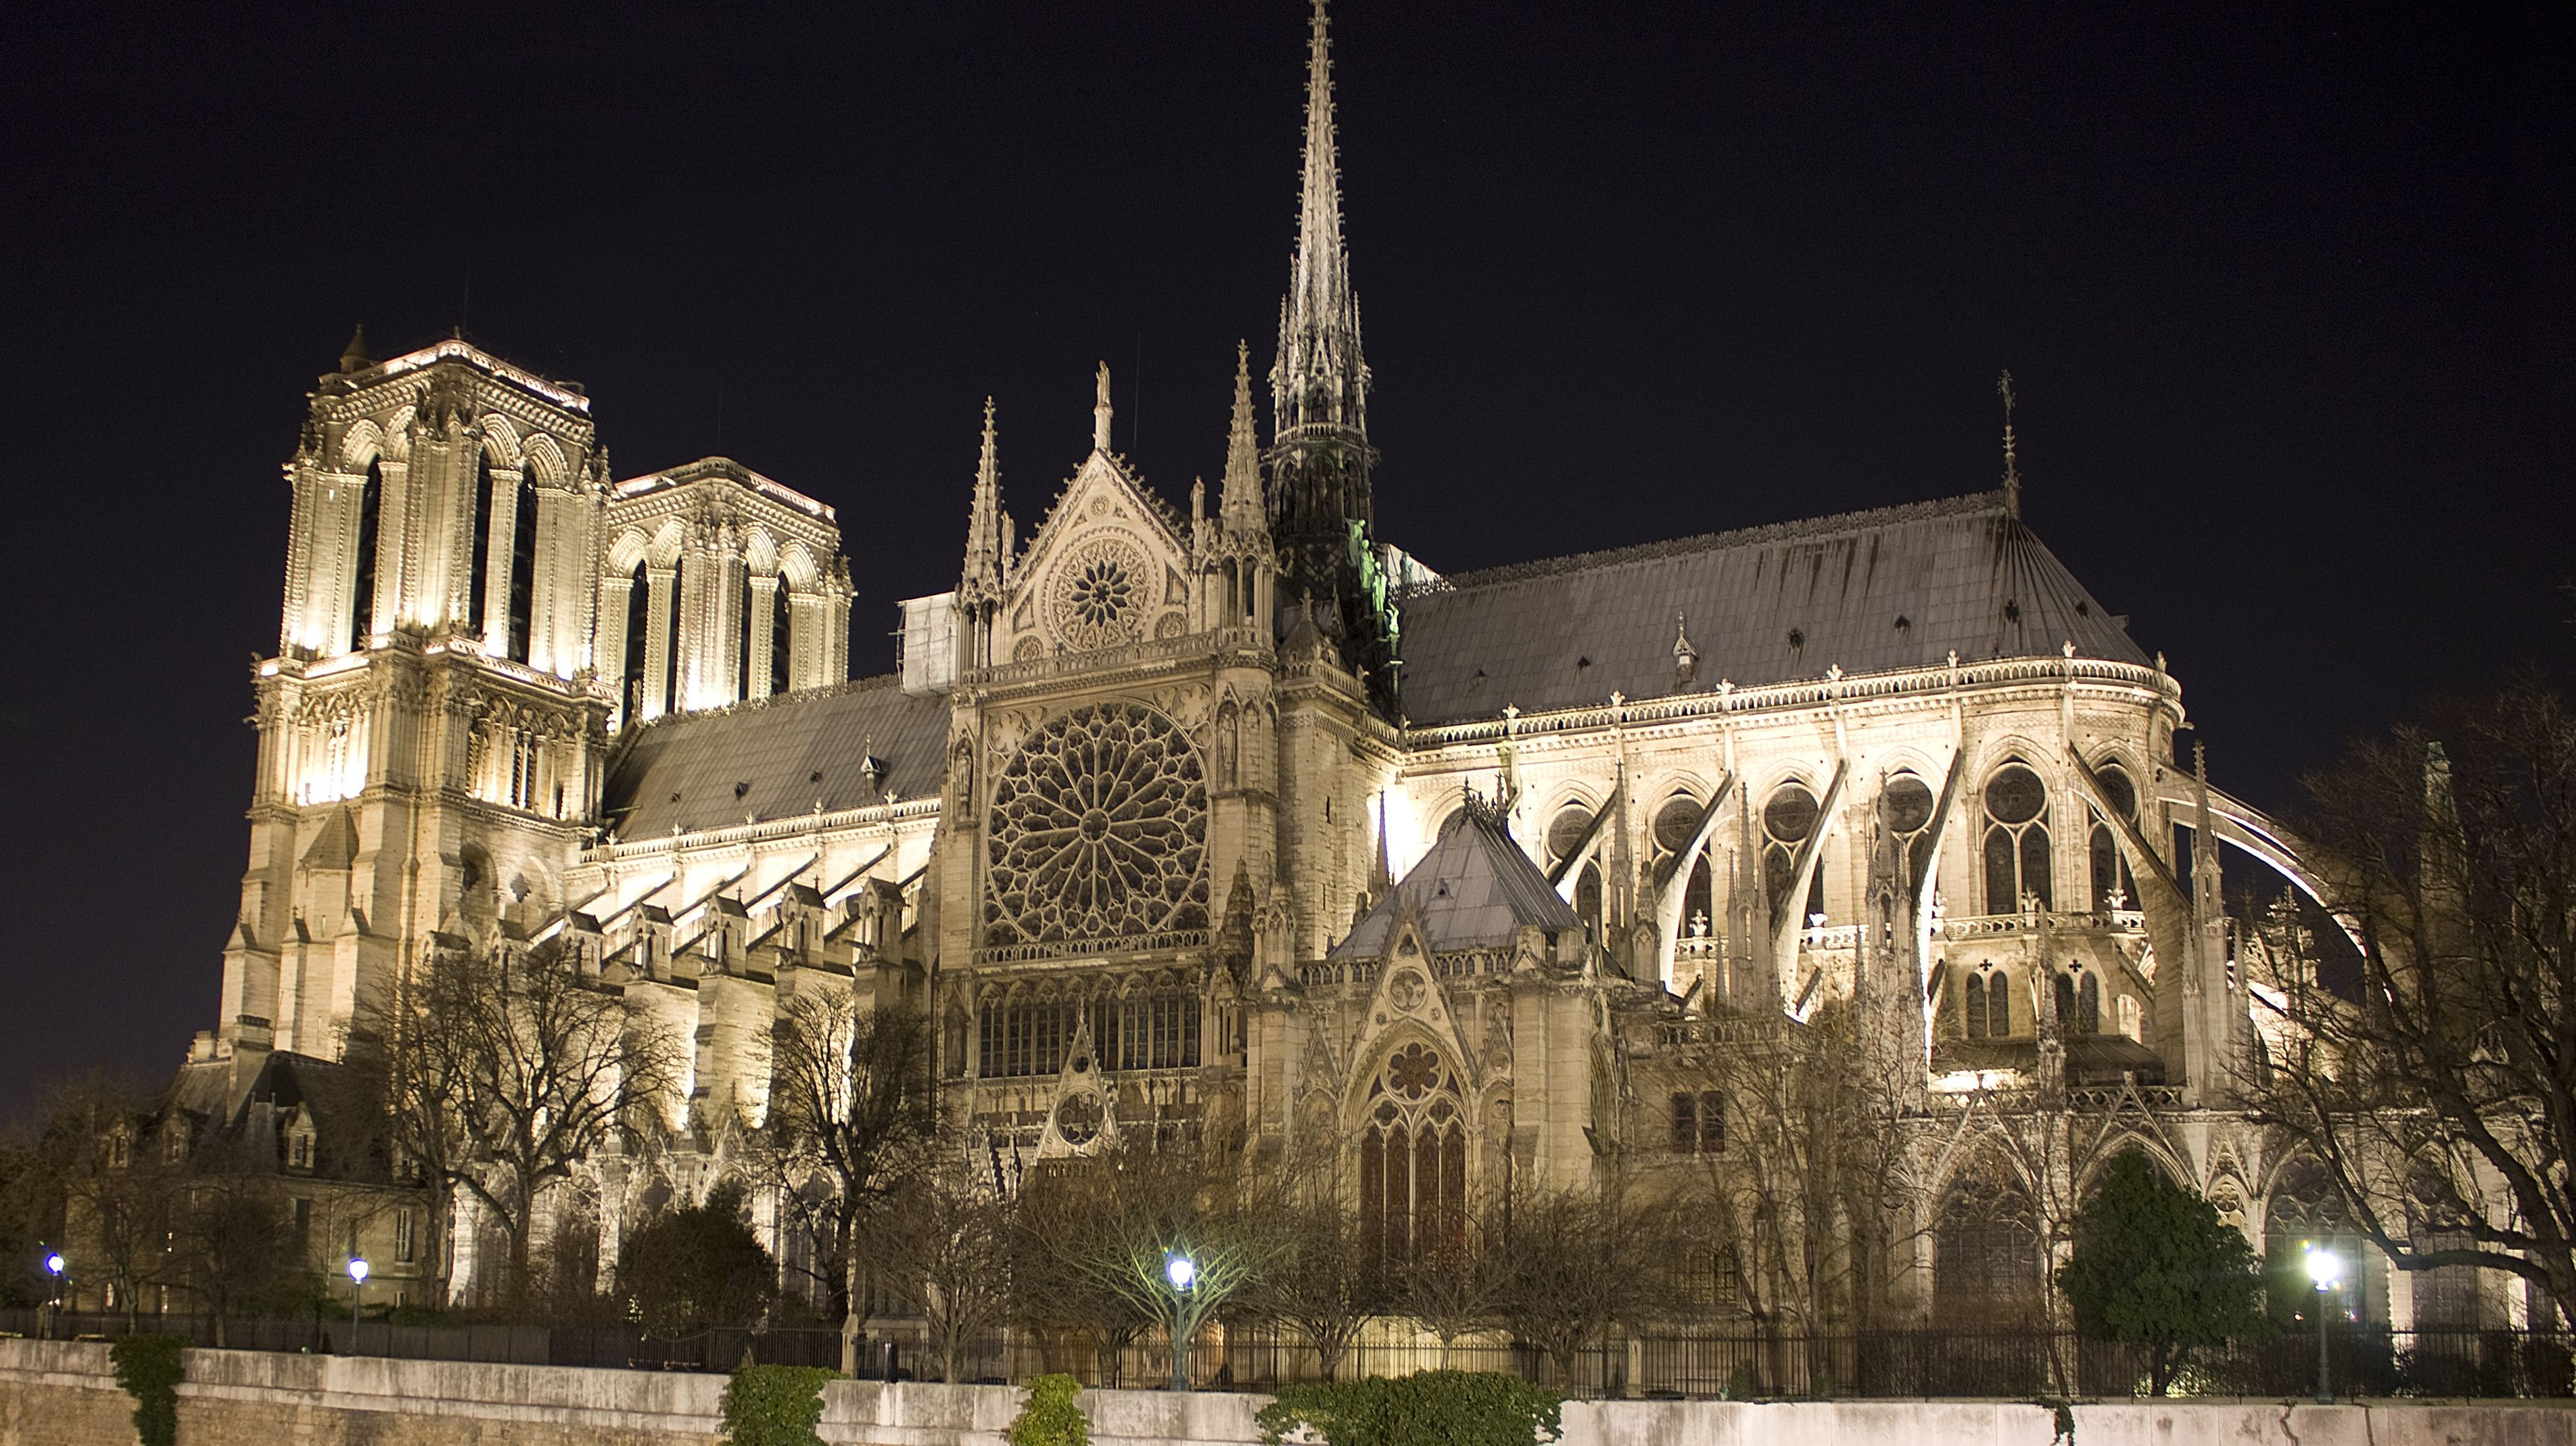 Notre Dame Cathedral (France)